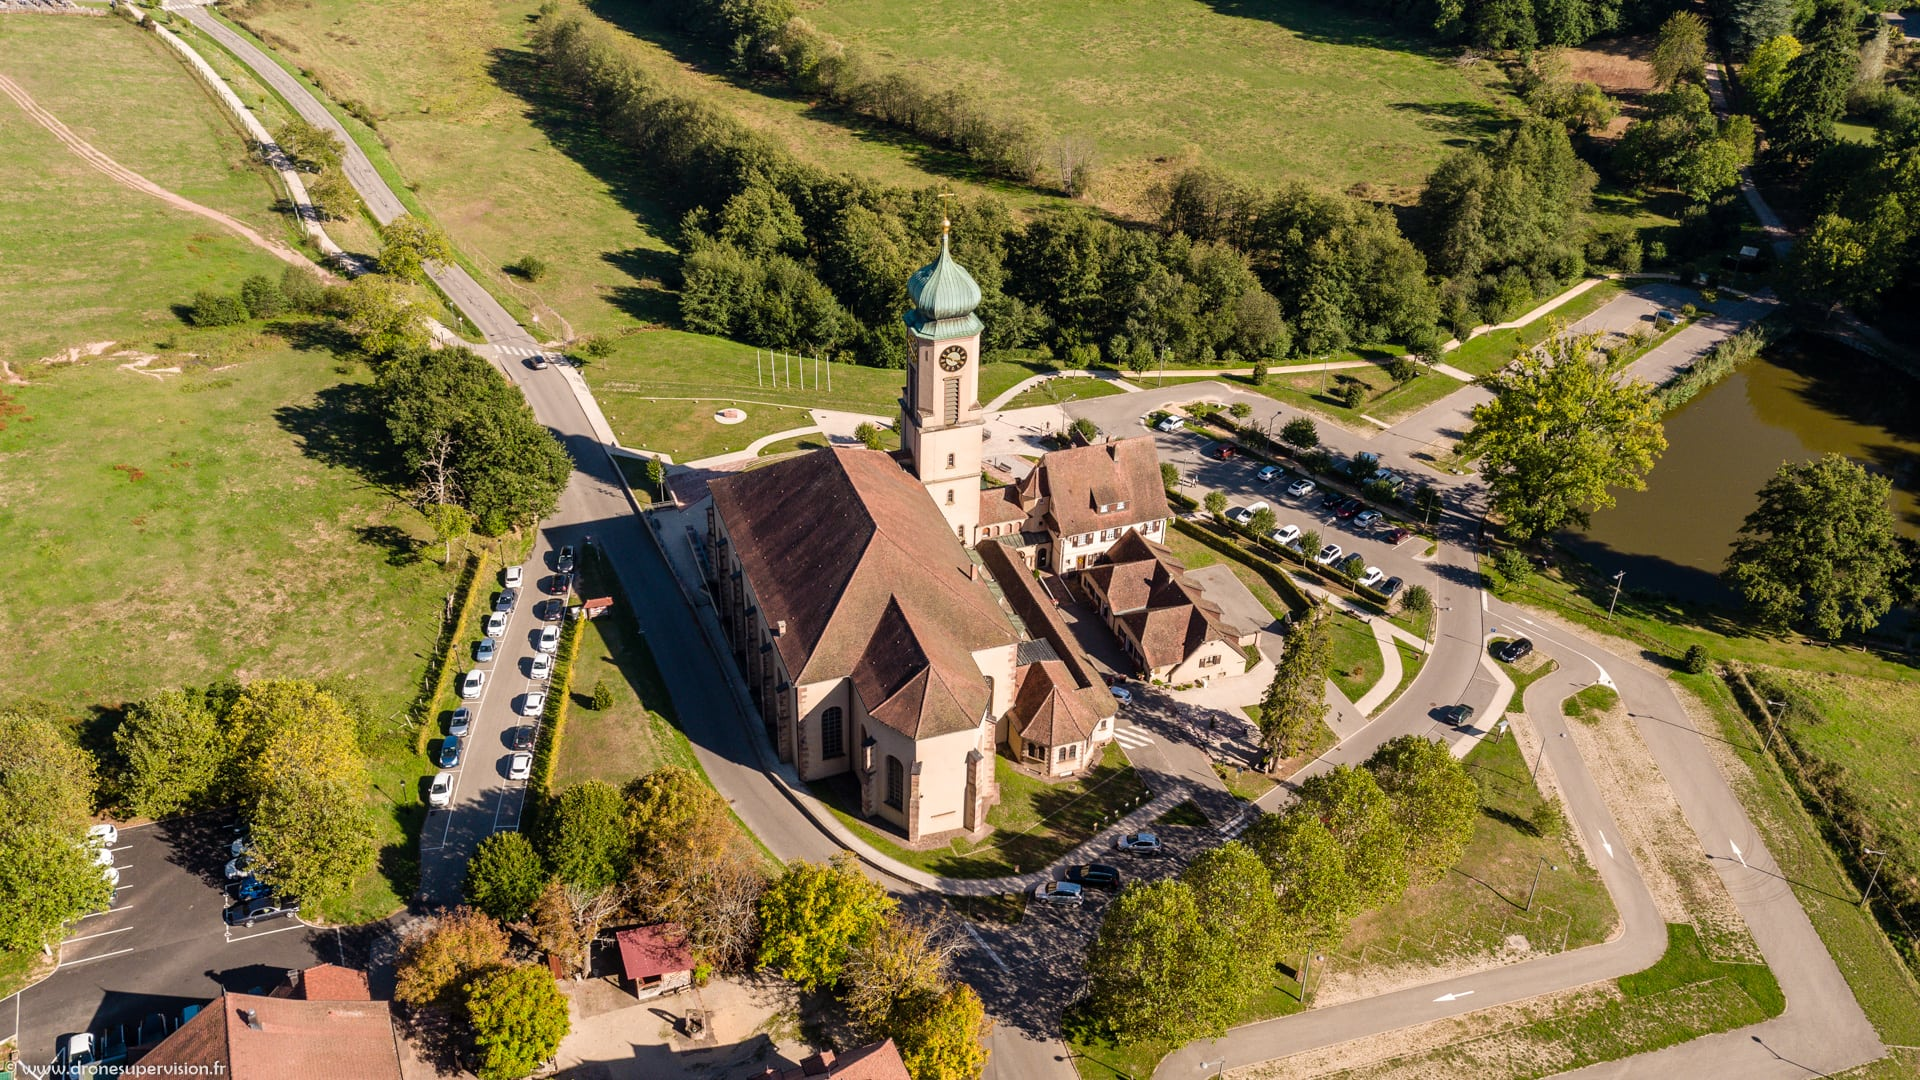 Thierenbach - Drone Supervision - DJI_0434-1